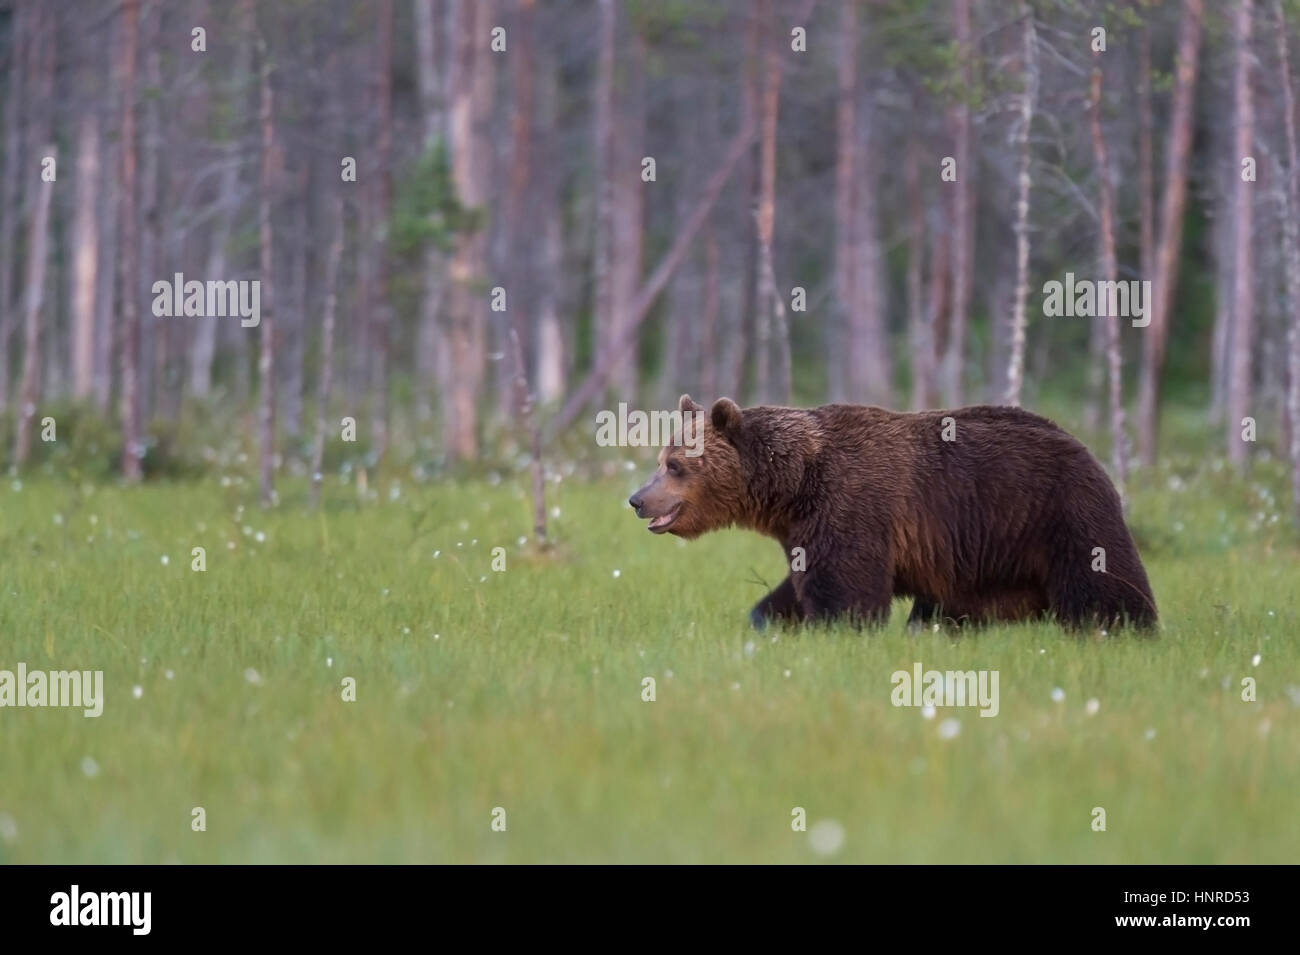 Brown bear at the edge of the forest, Braunbaer am Waldrand - Stock Image